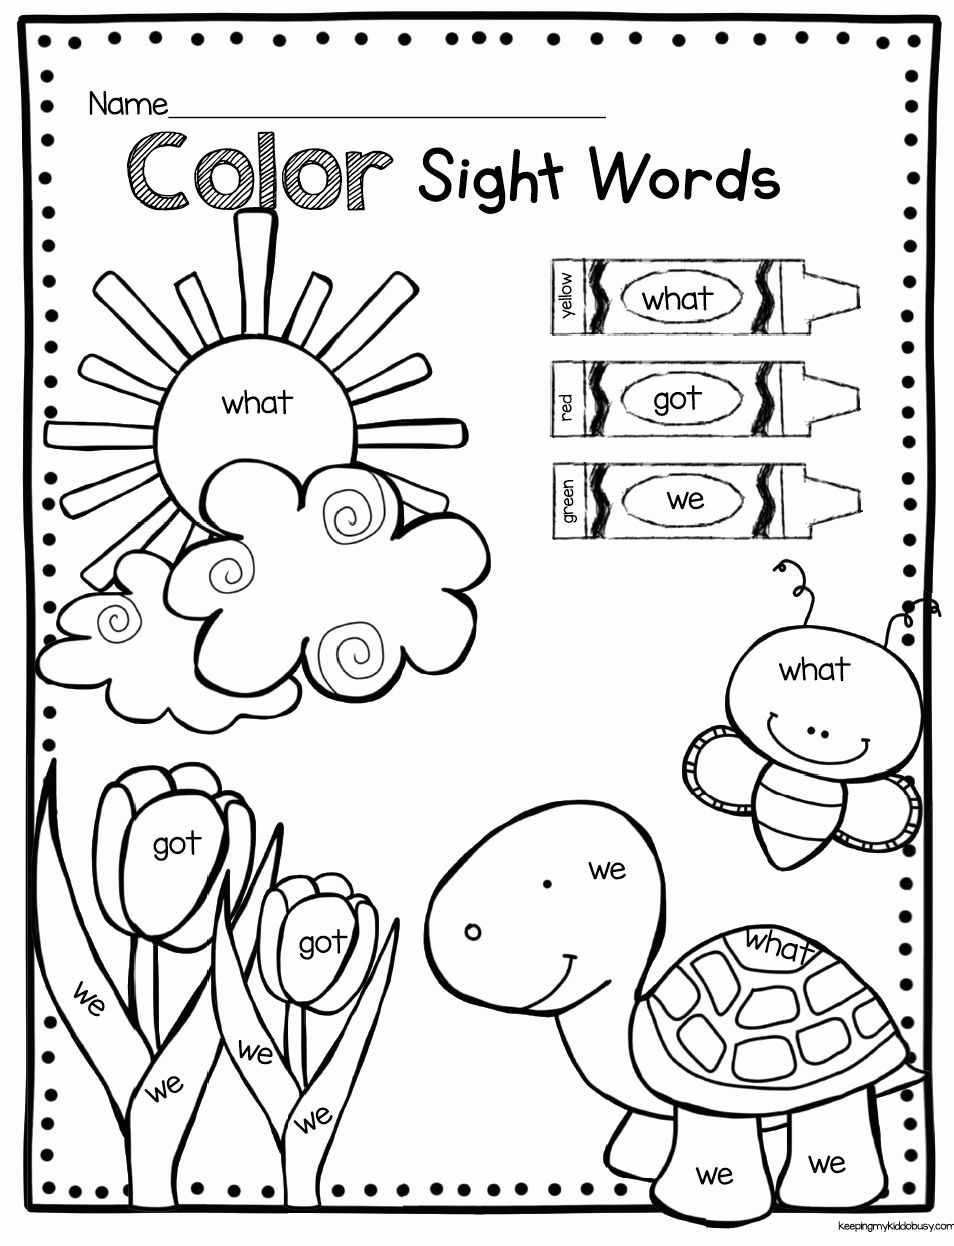 Color Words Coloring Sheet Elegant Coloring Pages Outstanding Kindergarten Sight Word In 2020 Sight Words Kindergarten Kindergarten Freebies Sight Word Coloring